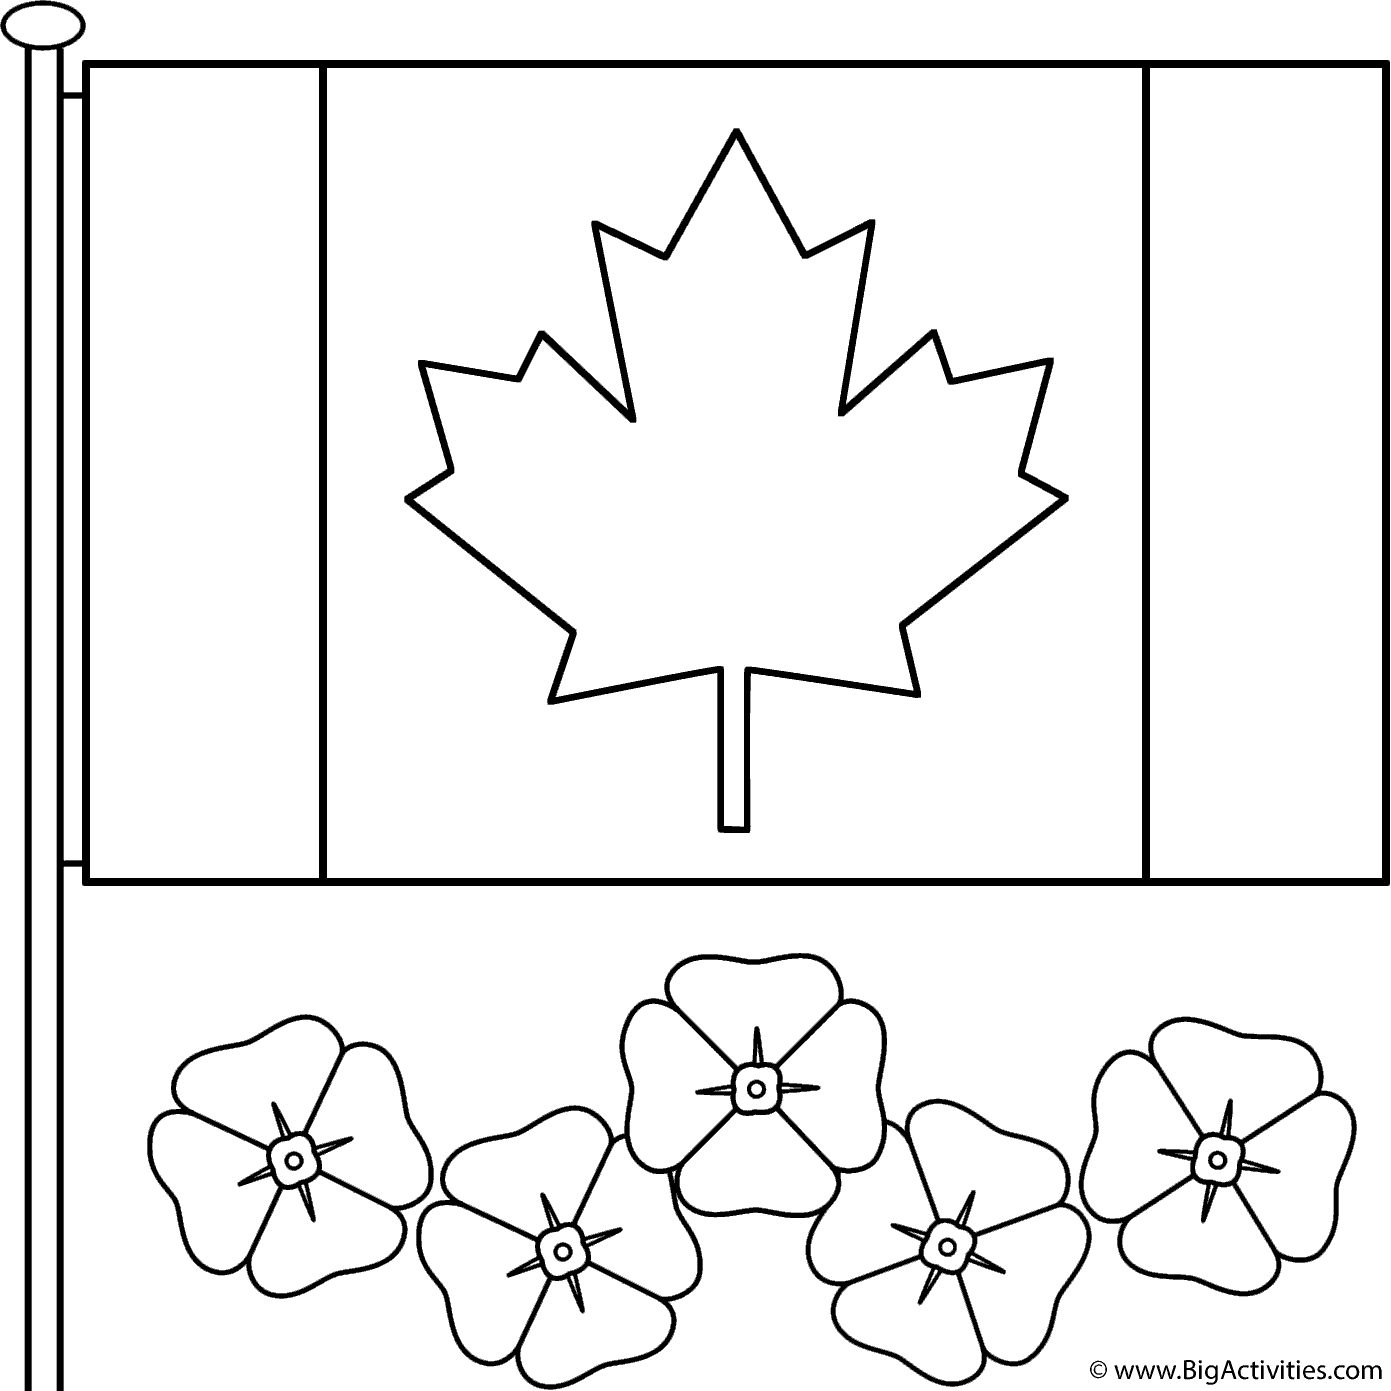 canadian flag coloring page canada flag coloring page lovely 43 canada flag coloring page flag coloring canadian